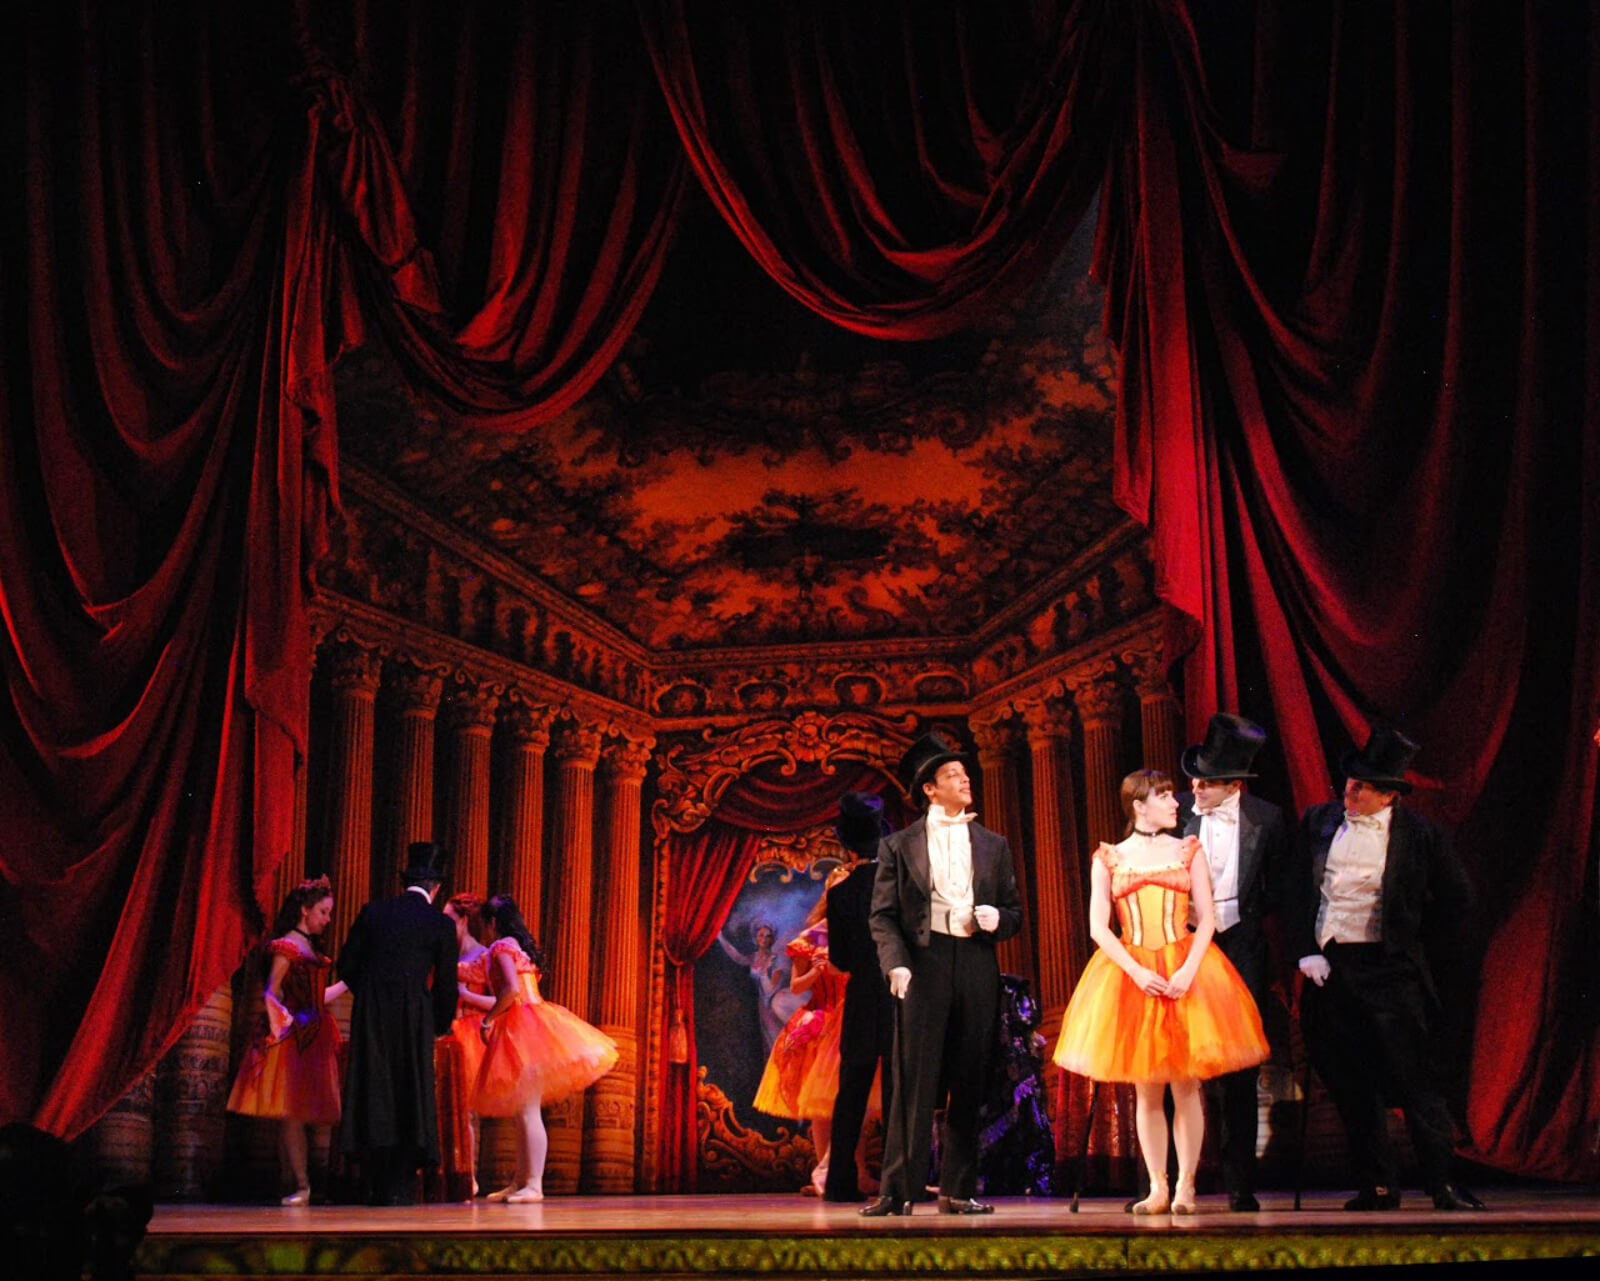 Marie (Tiler Peck) surrounded by the abonnés in the Foyer de la Danse. She is dressed in her butterfly tutu, the men are in their top and tails. There is red lighting on the set.